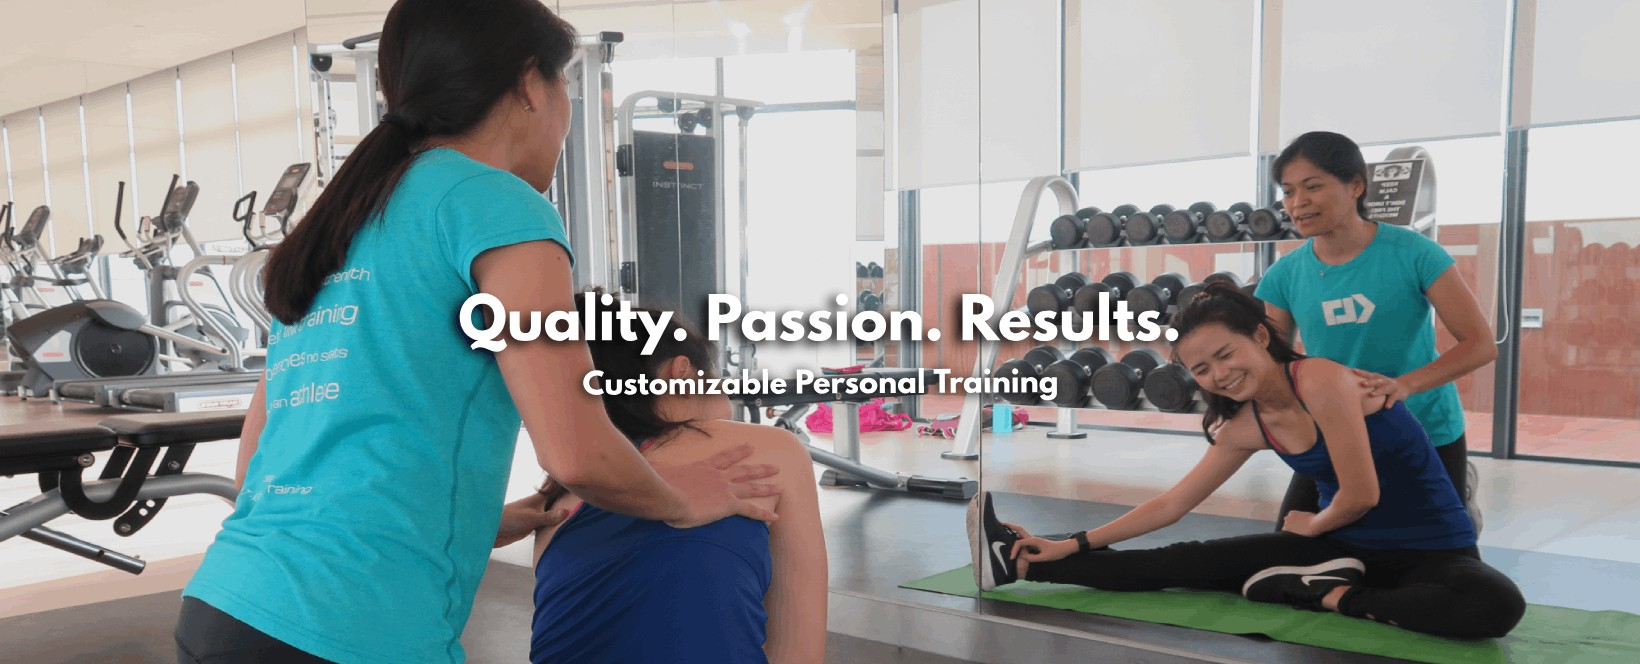 Customized Personal Training